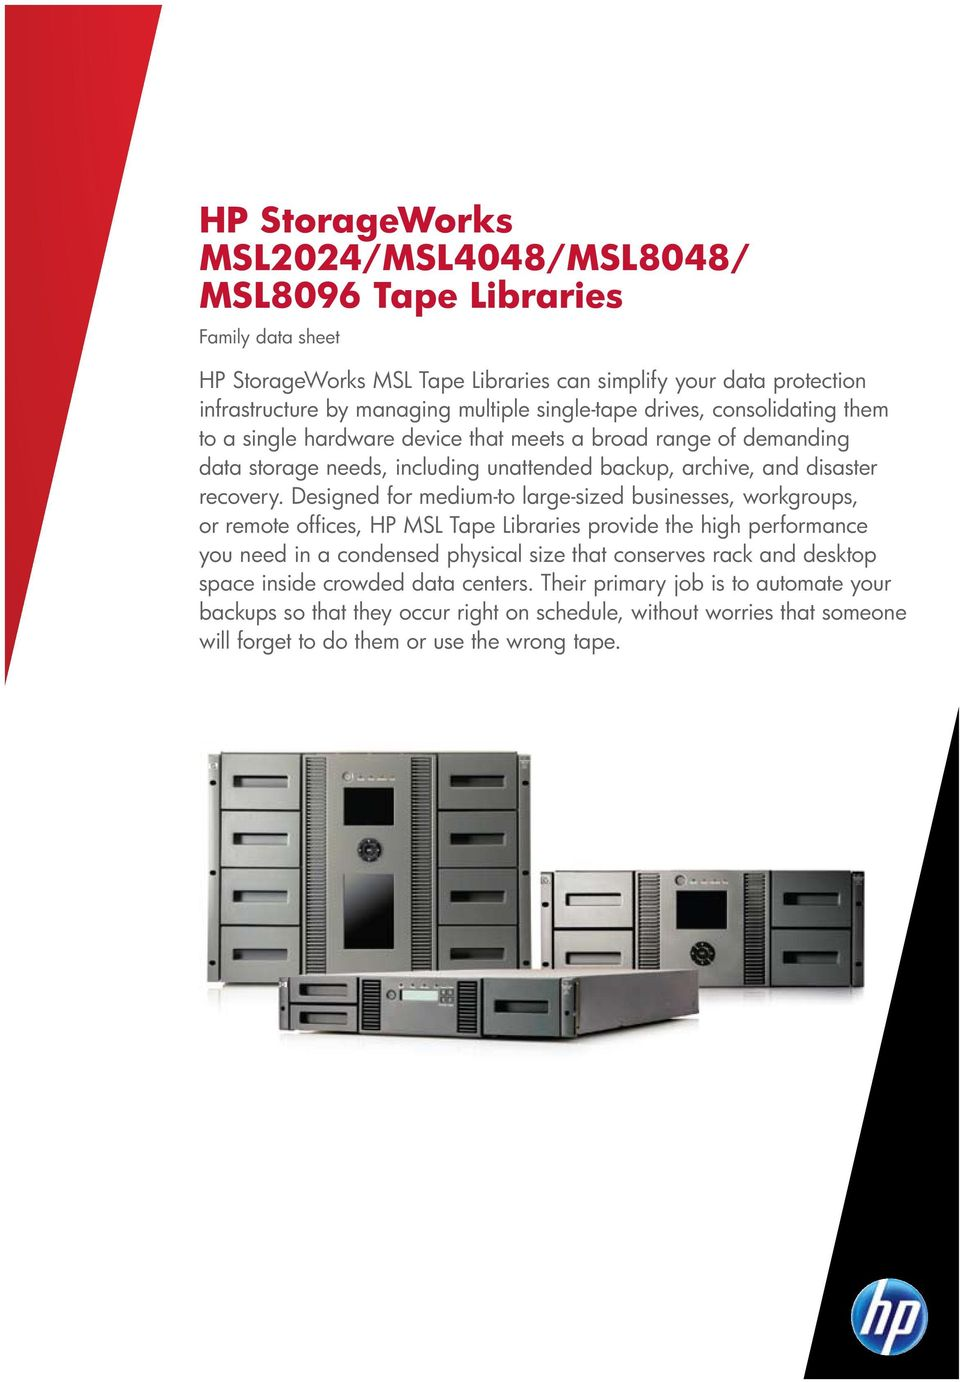 Designed for medium-to large-sized businesses, workgroups, or remote offices, HP MSL Tape Libraries provide the high performance you need in a condensed physical size that conserves rack and